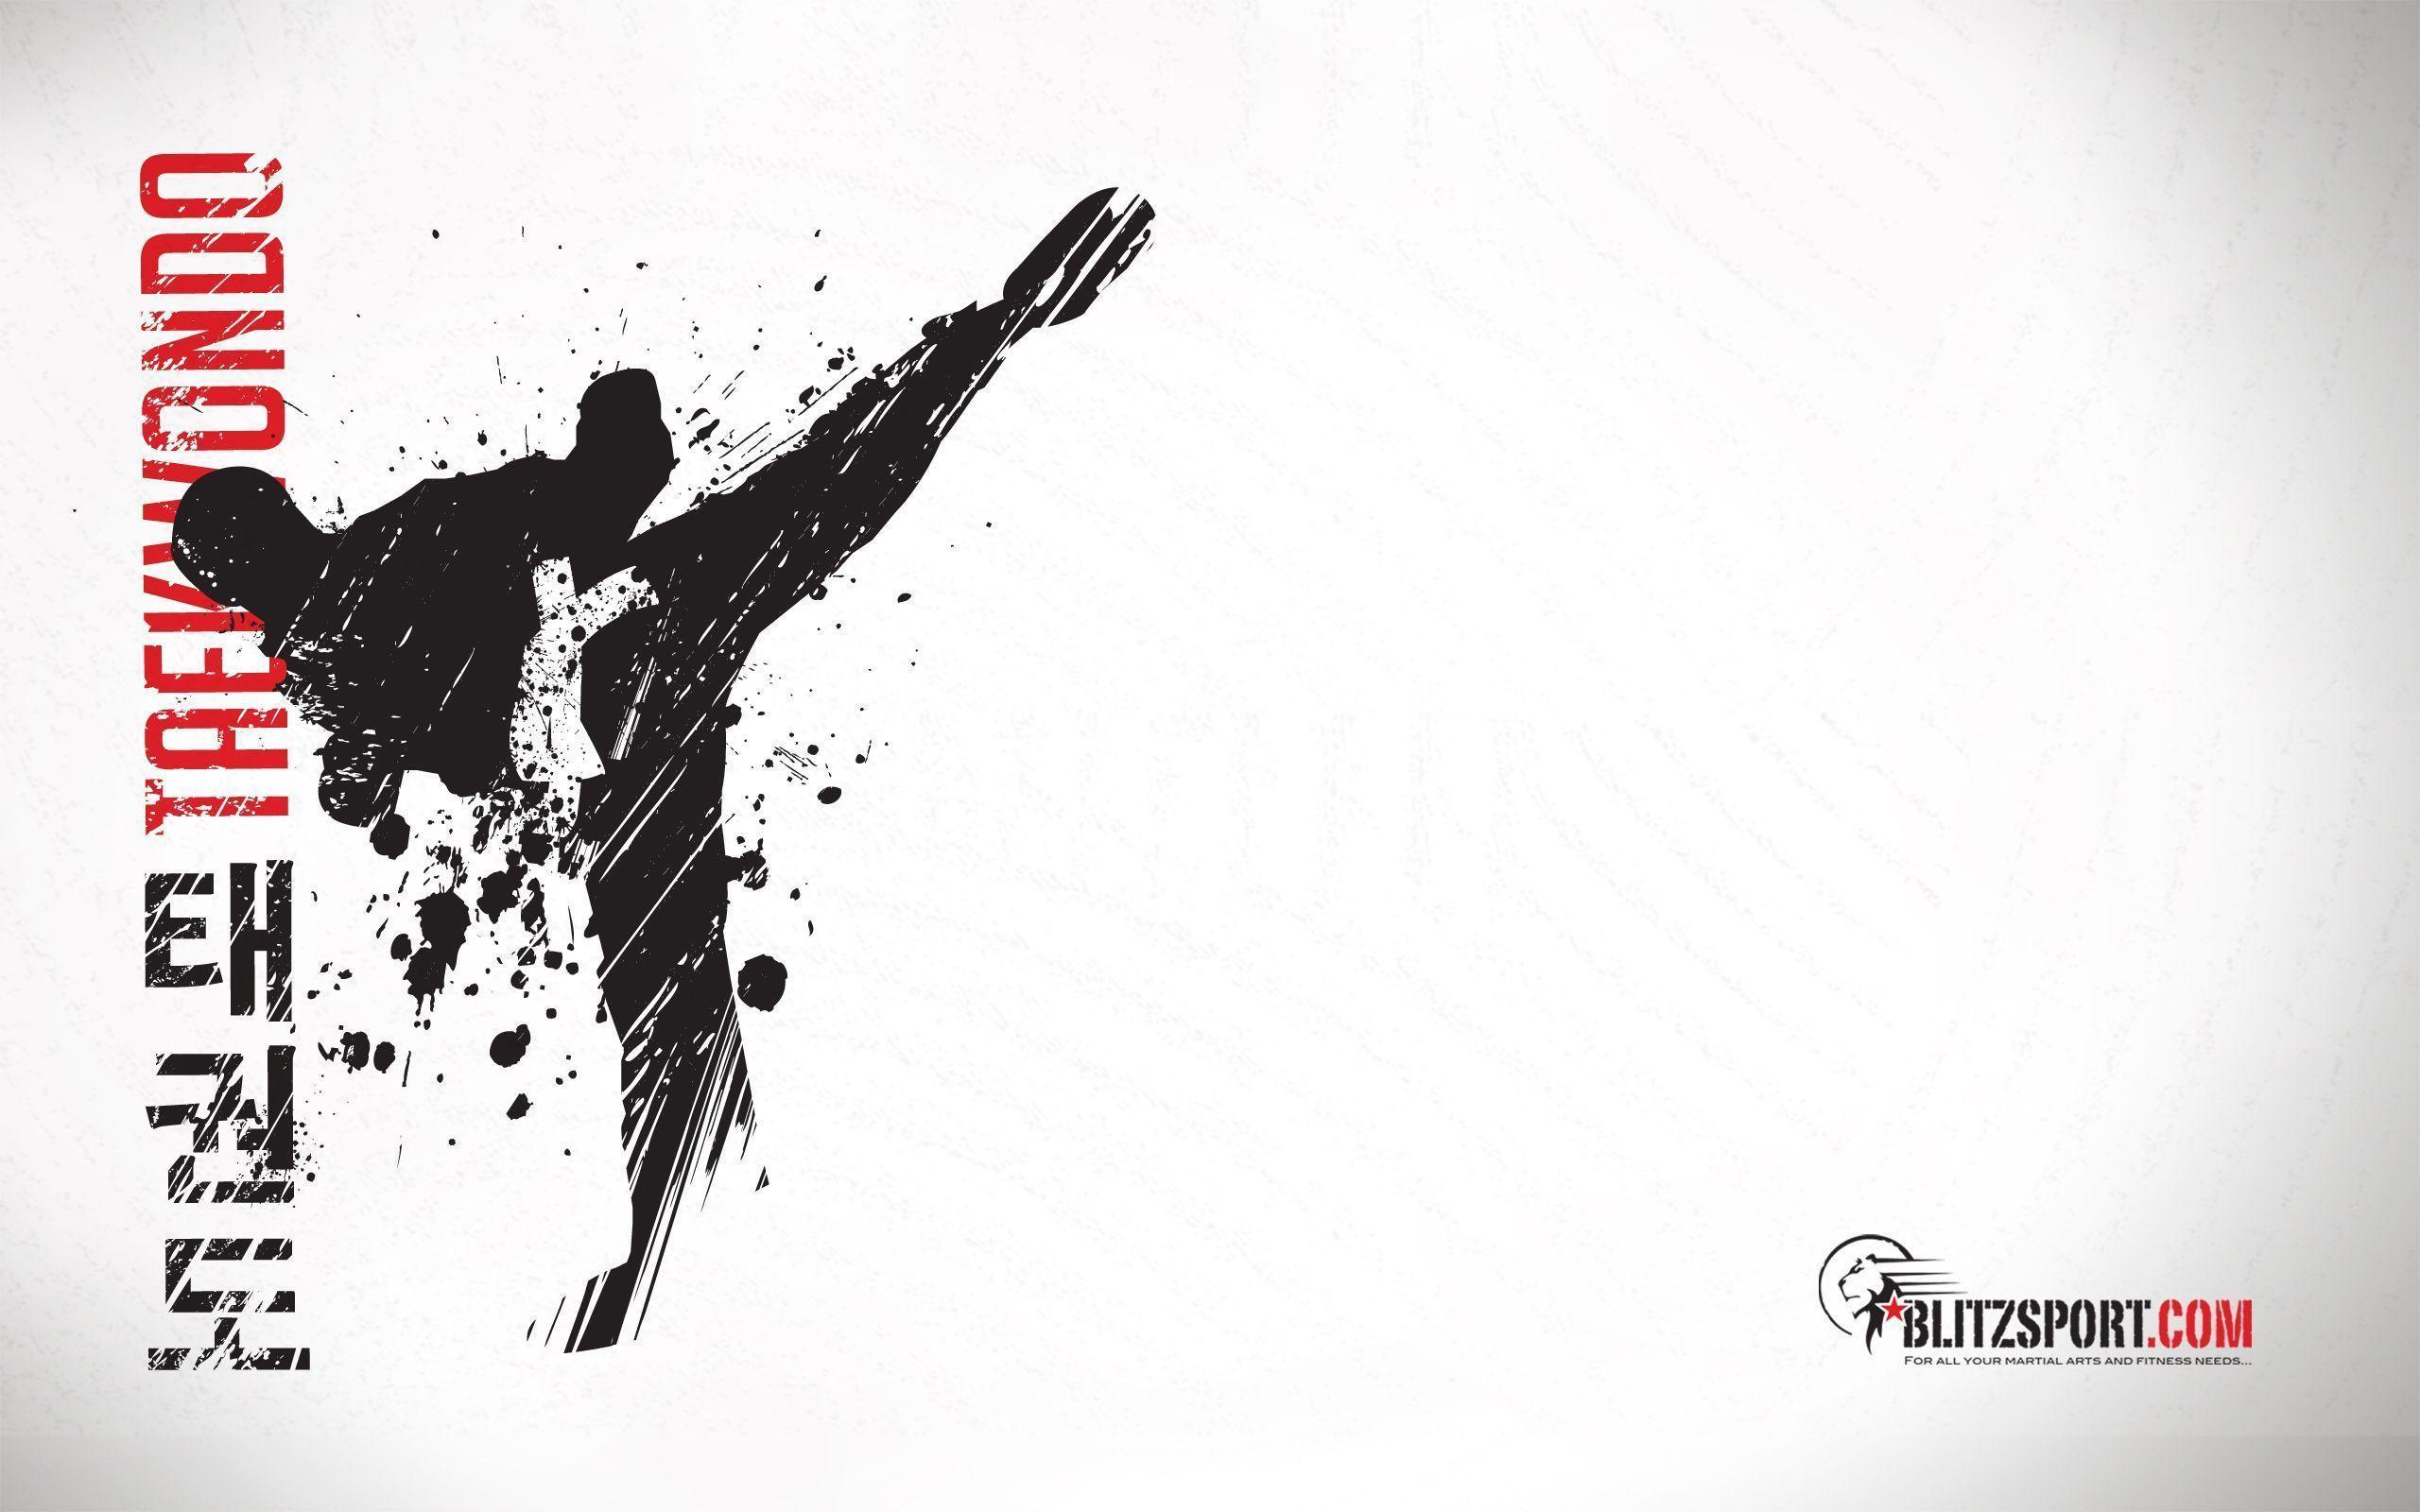 Taekwondo wallpapers wallpaper cave for Best online store for artists